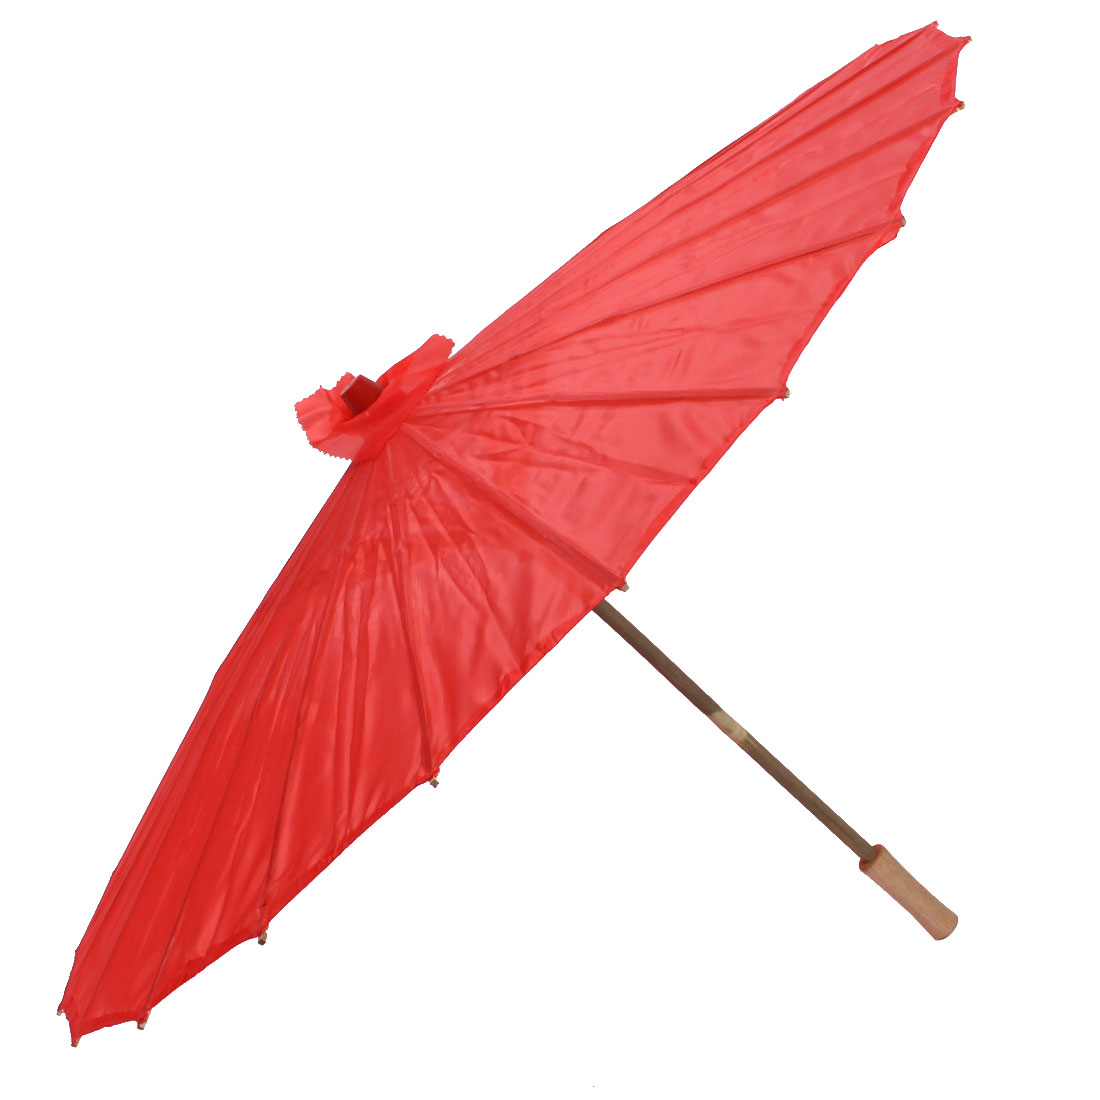 Bamboo Chinese Style Traditional Manually Dancing Umbrella Parasol 78cm Dia Red